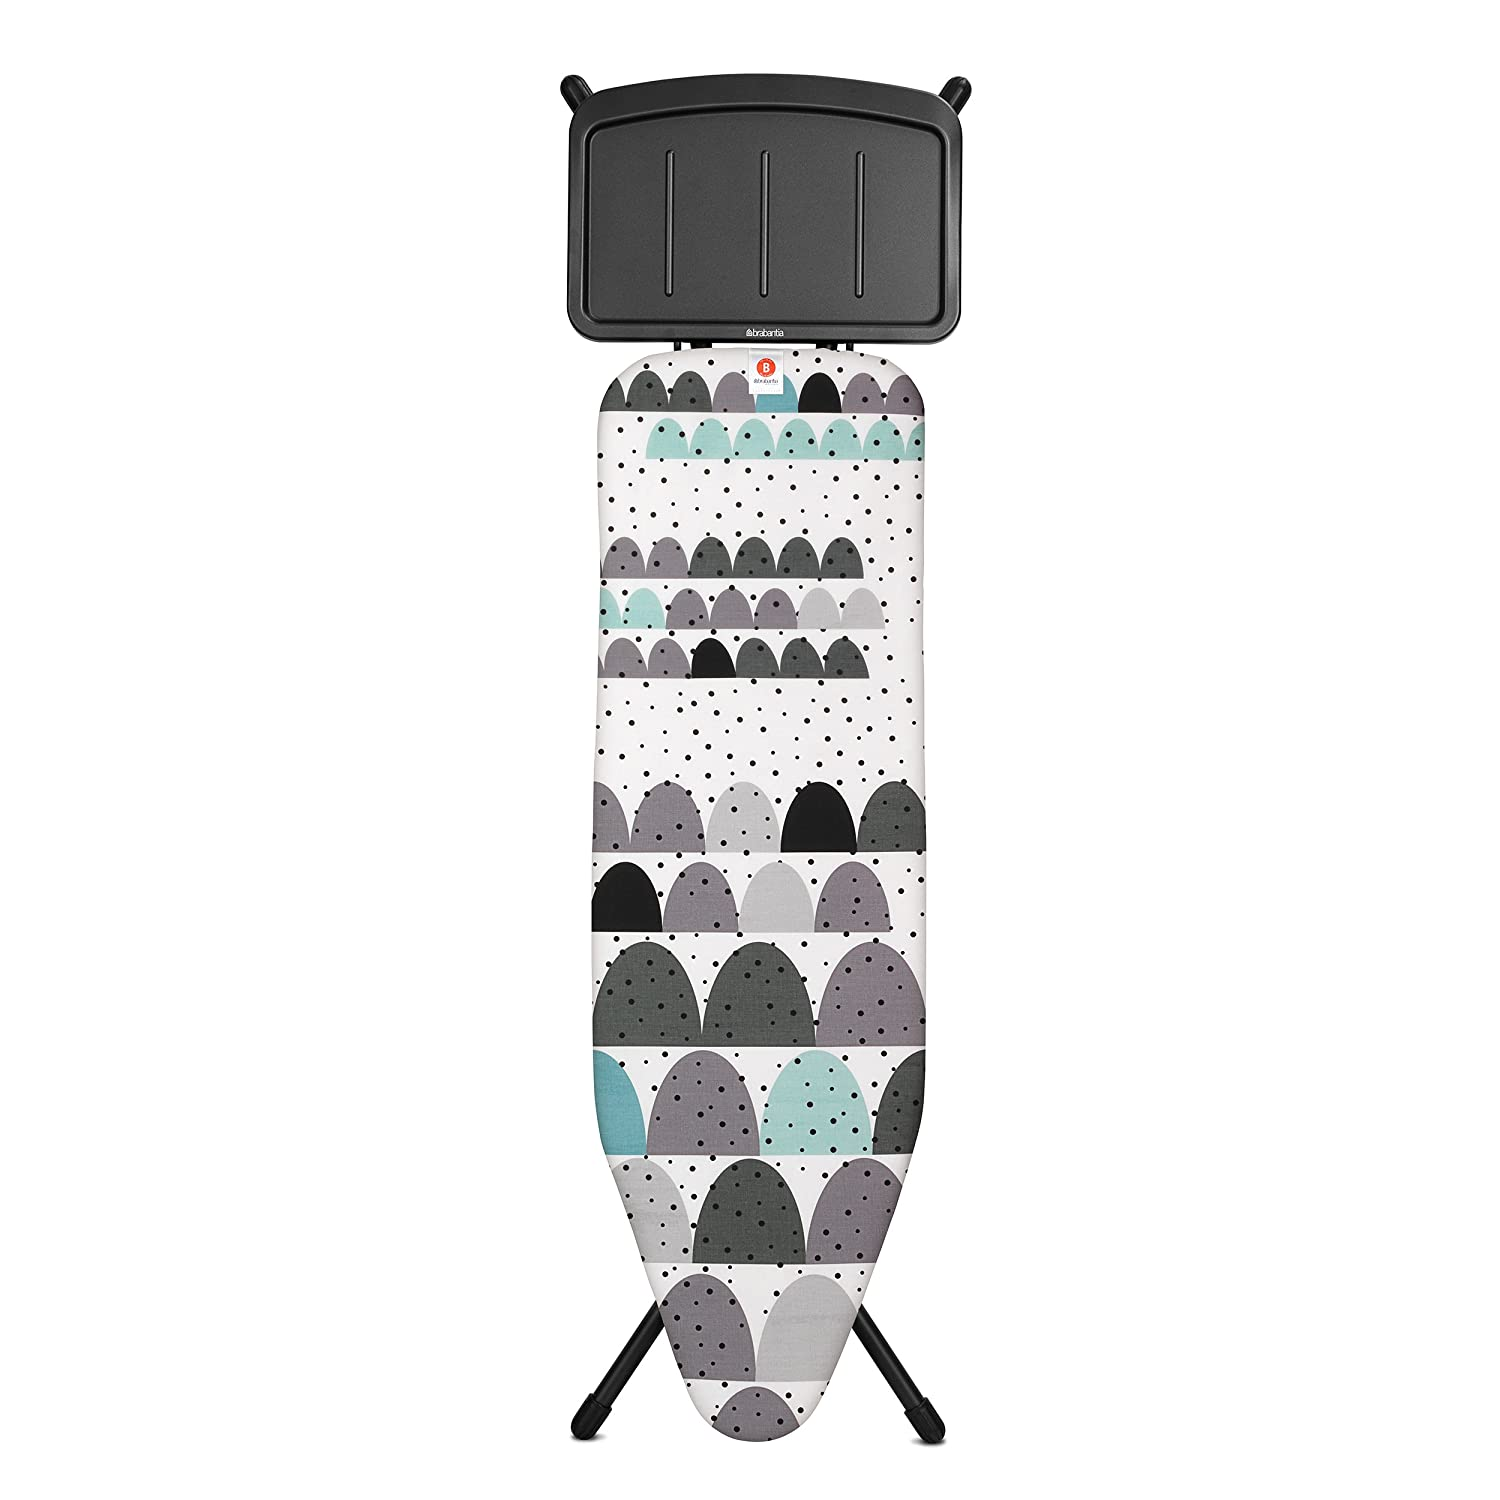 brabantia-ironing-board-b-124x38cm-iron-parking-zone-steel-frame-22mm-dunes-black-103506